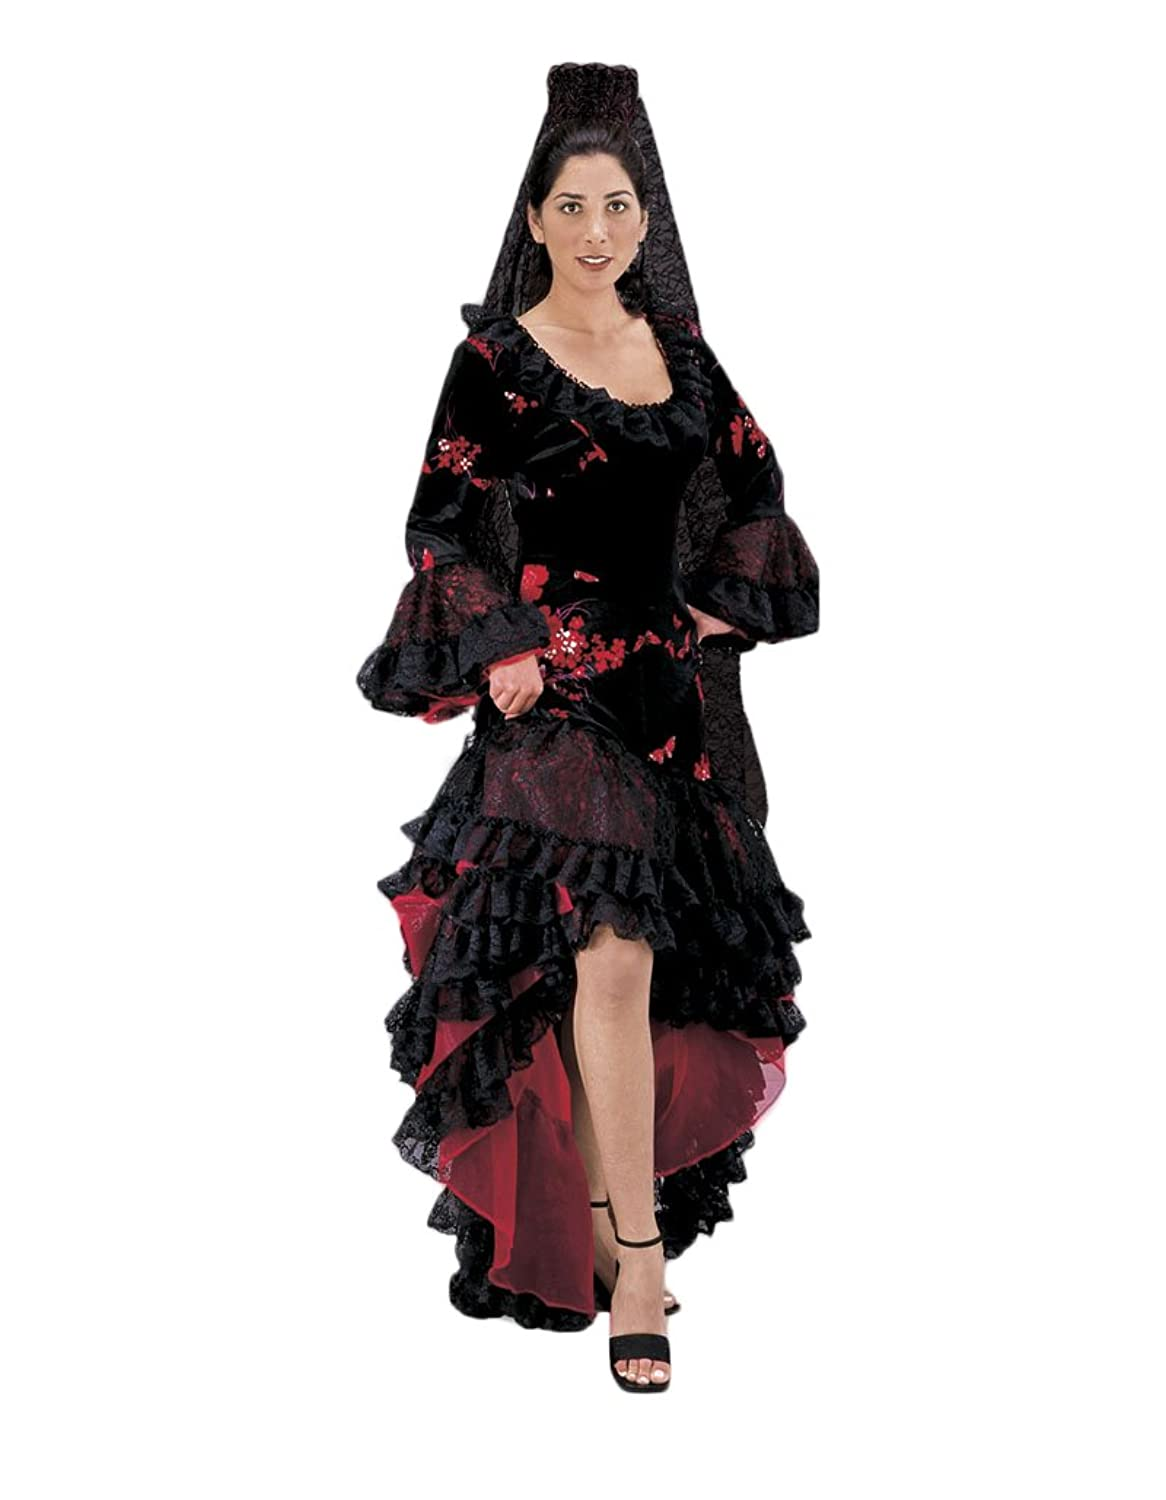 Amazon.com: Women's Black Spanish Flamenco Dancer Costume Dress ...